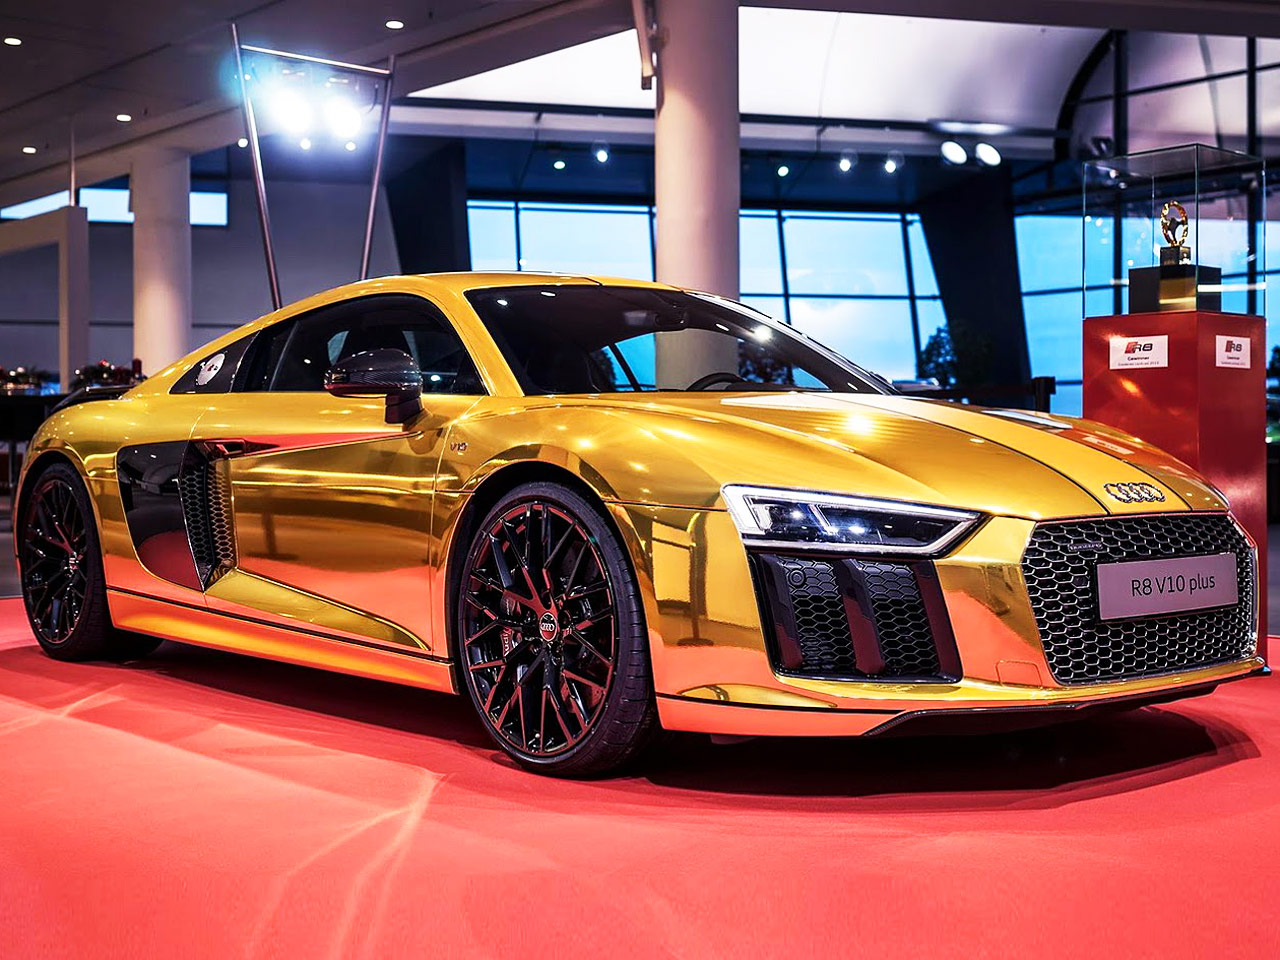 goldener audi r8 im audi forum neckarsulm. Black Bedroom Furniture Sets. Home Design Ideas